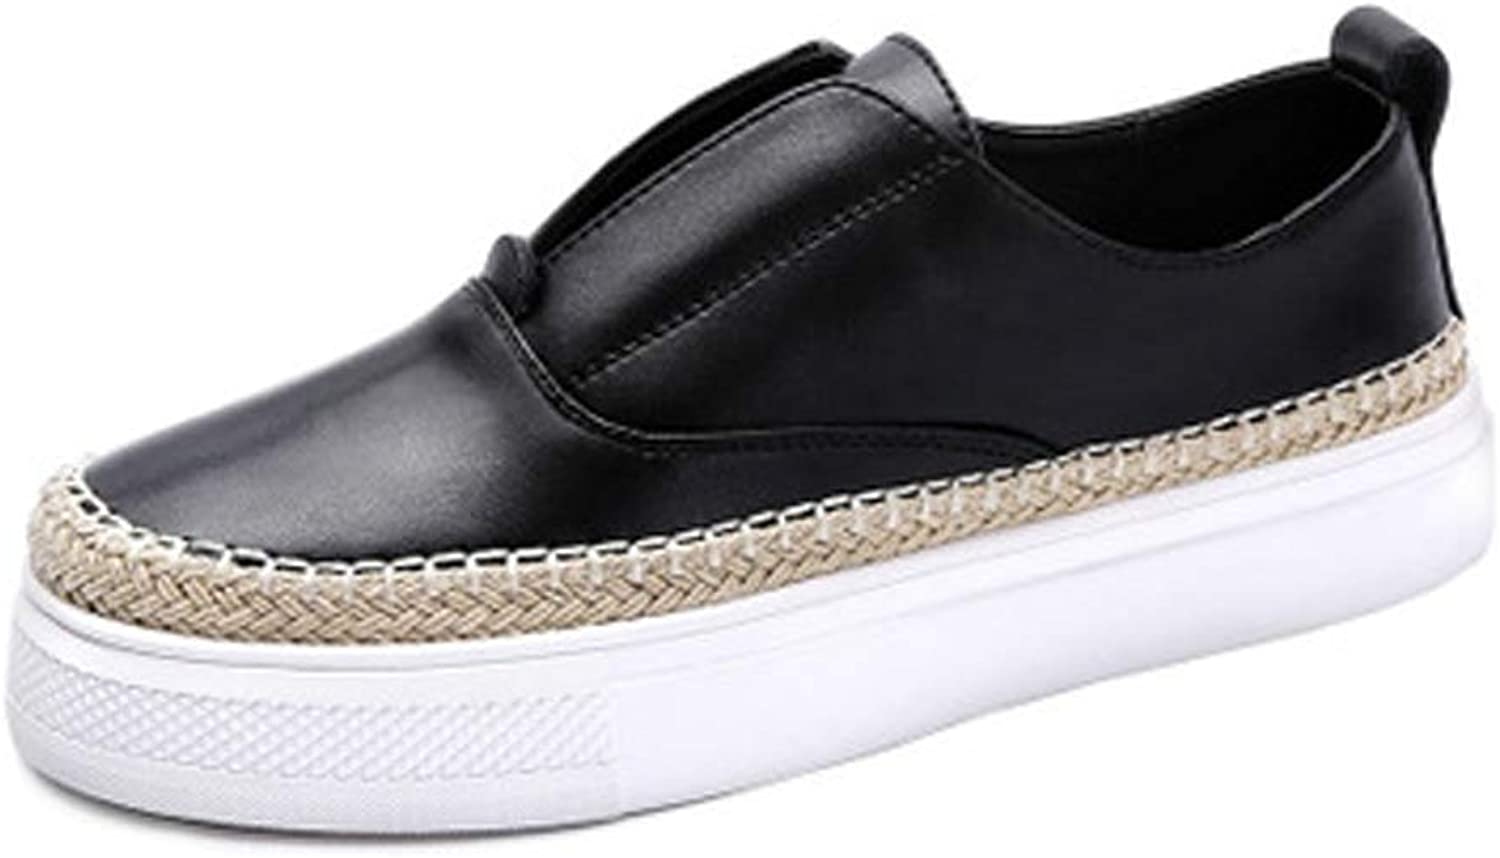 Women's Flat Casual shoes Weaving College Wind Women's shoes.